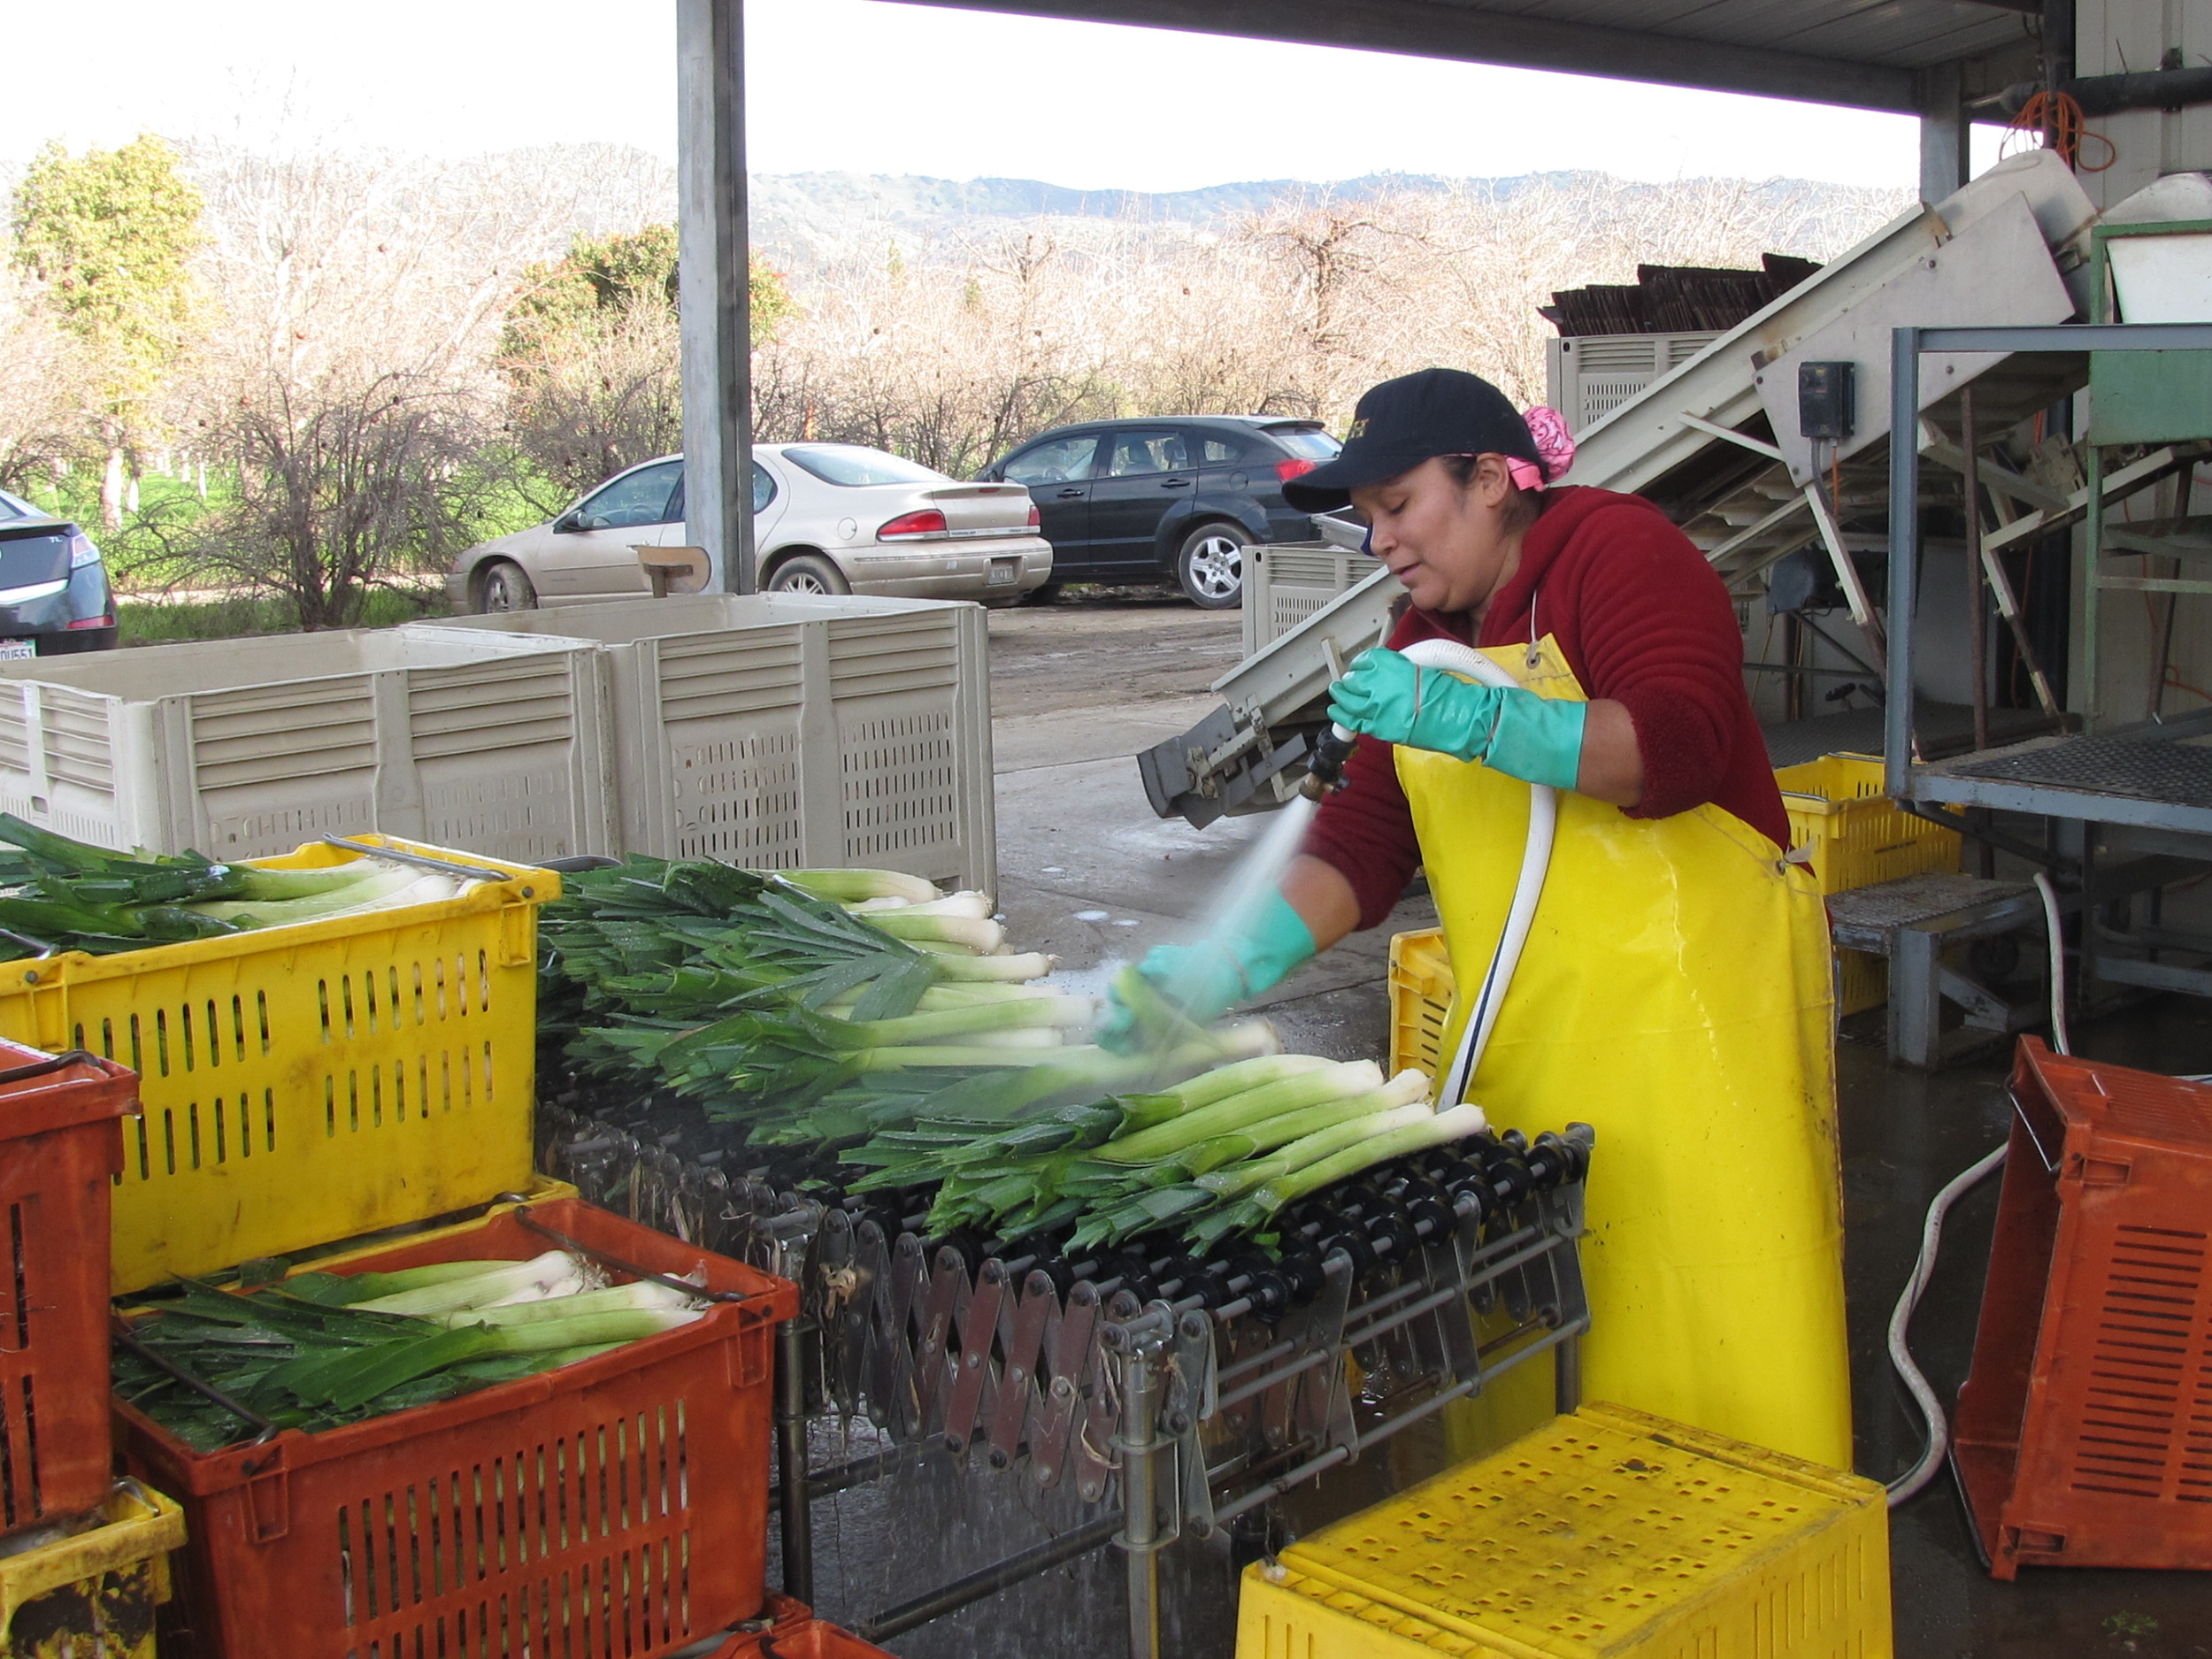 Mari preparing the leeks for packing